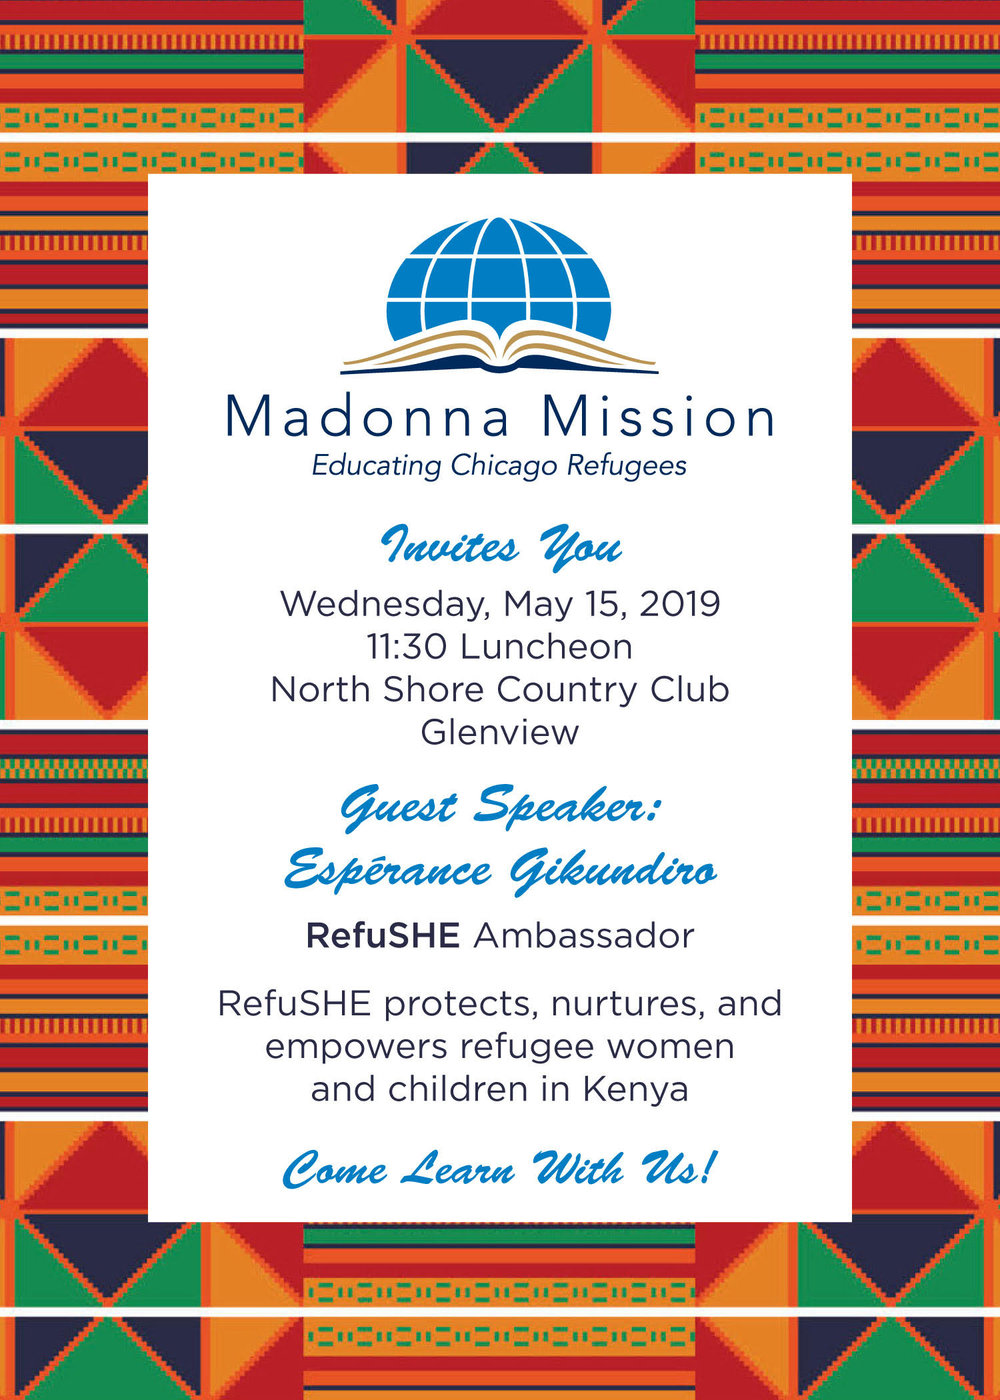 MM invitation cover.jpg